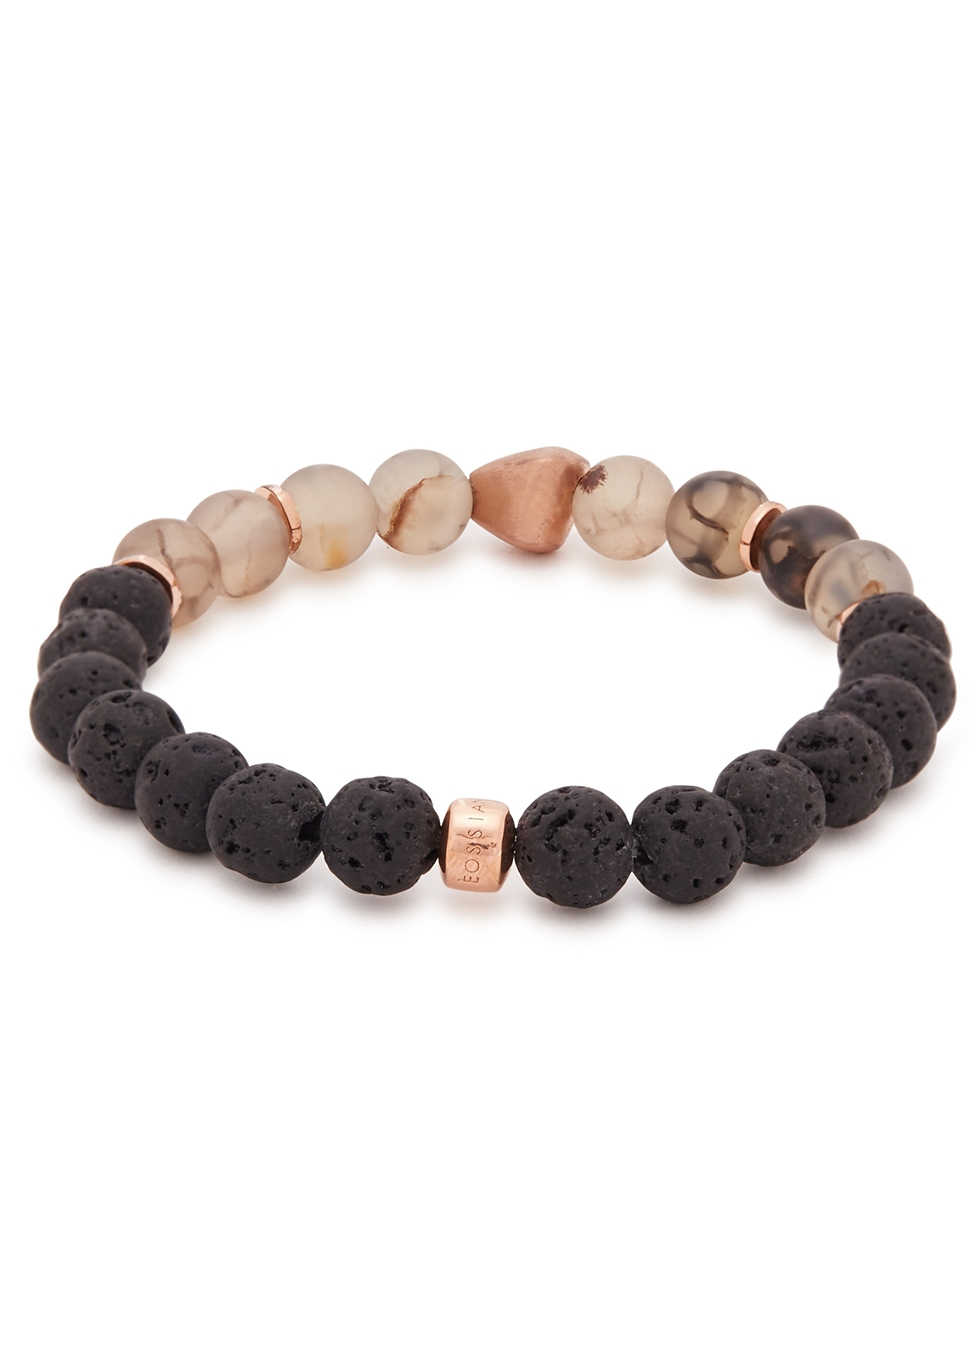 Nugget rose gold-plated beaded bracelet - Tateossian